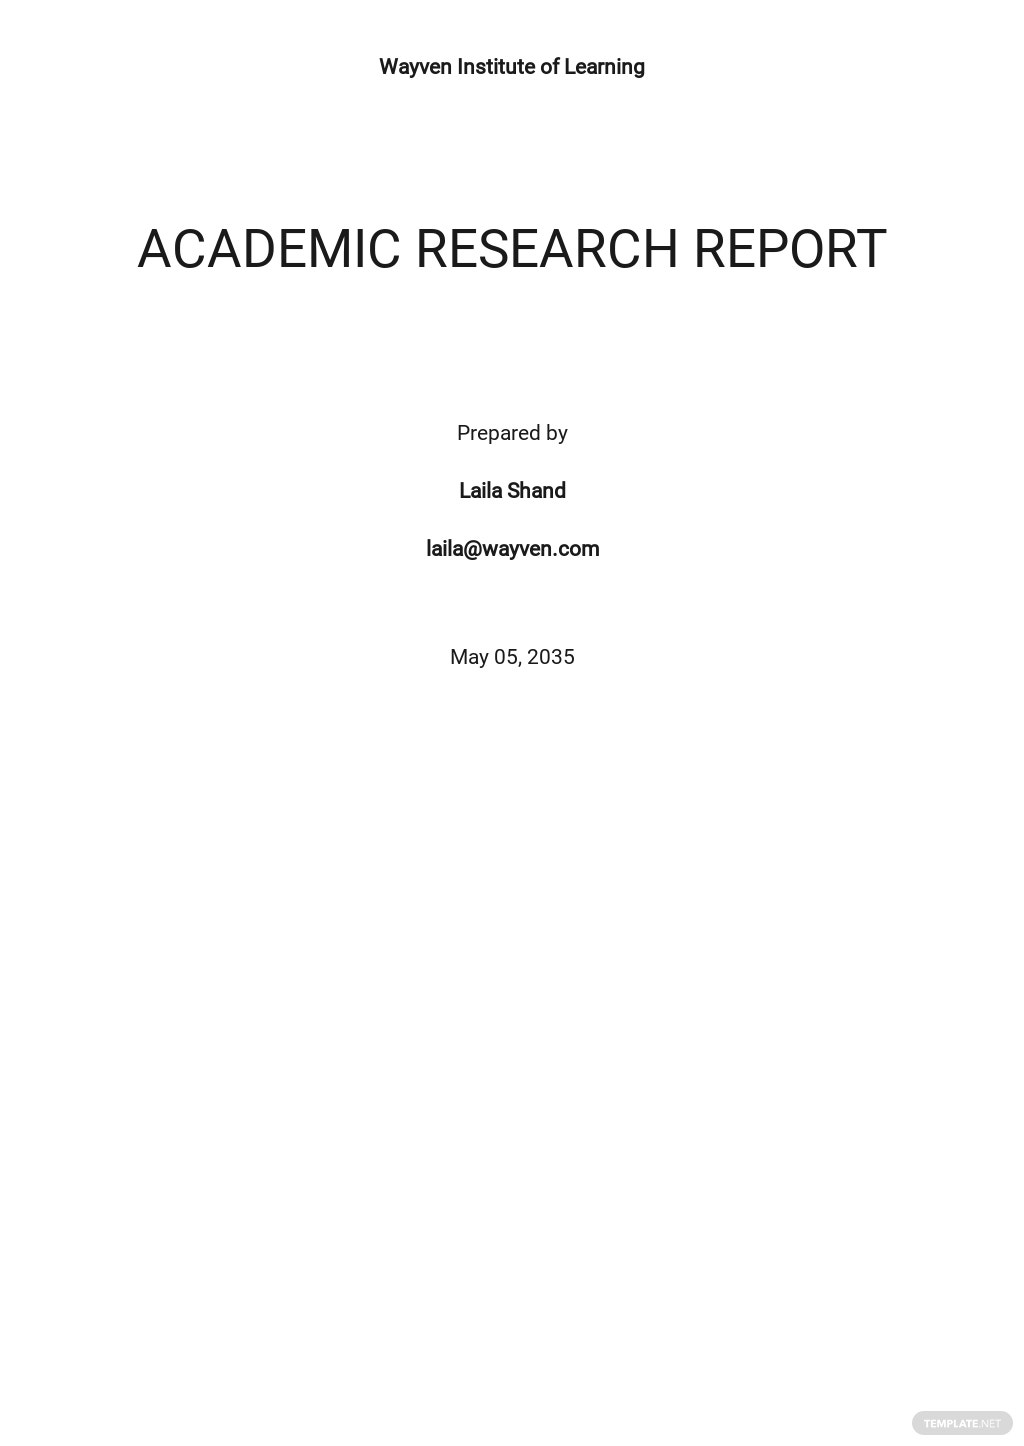 Academic Research Report Template